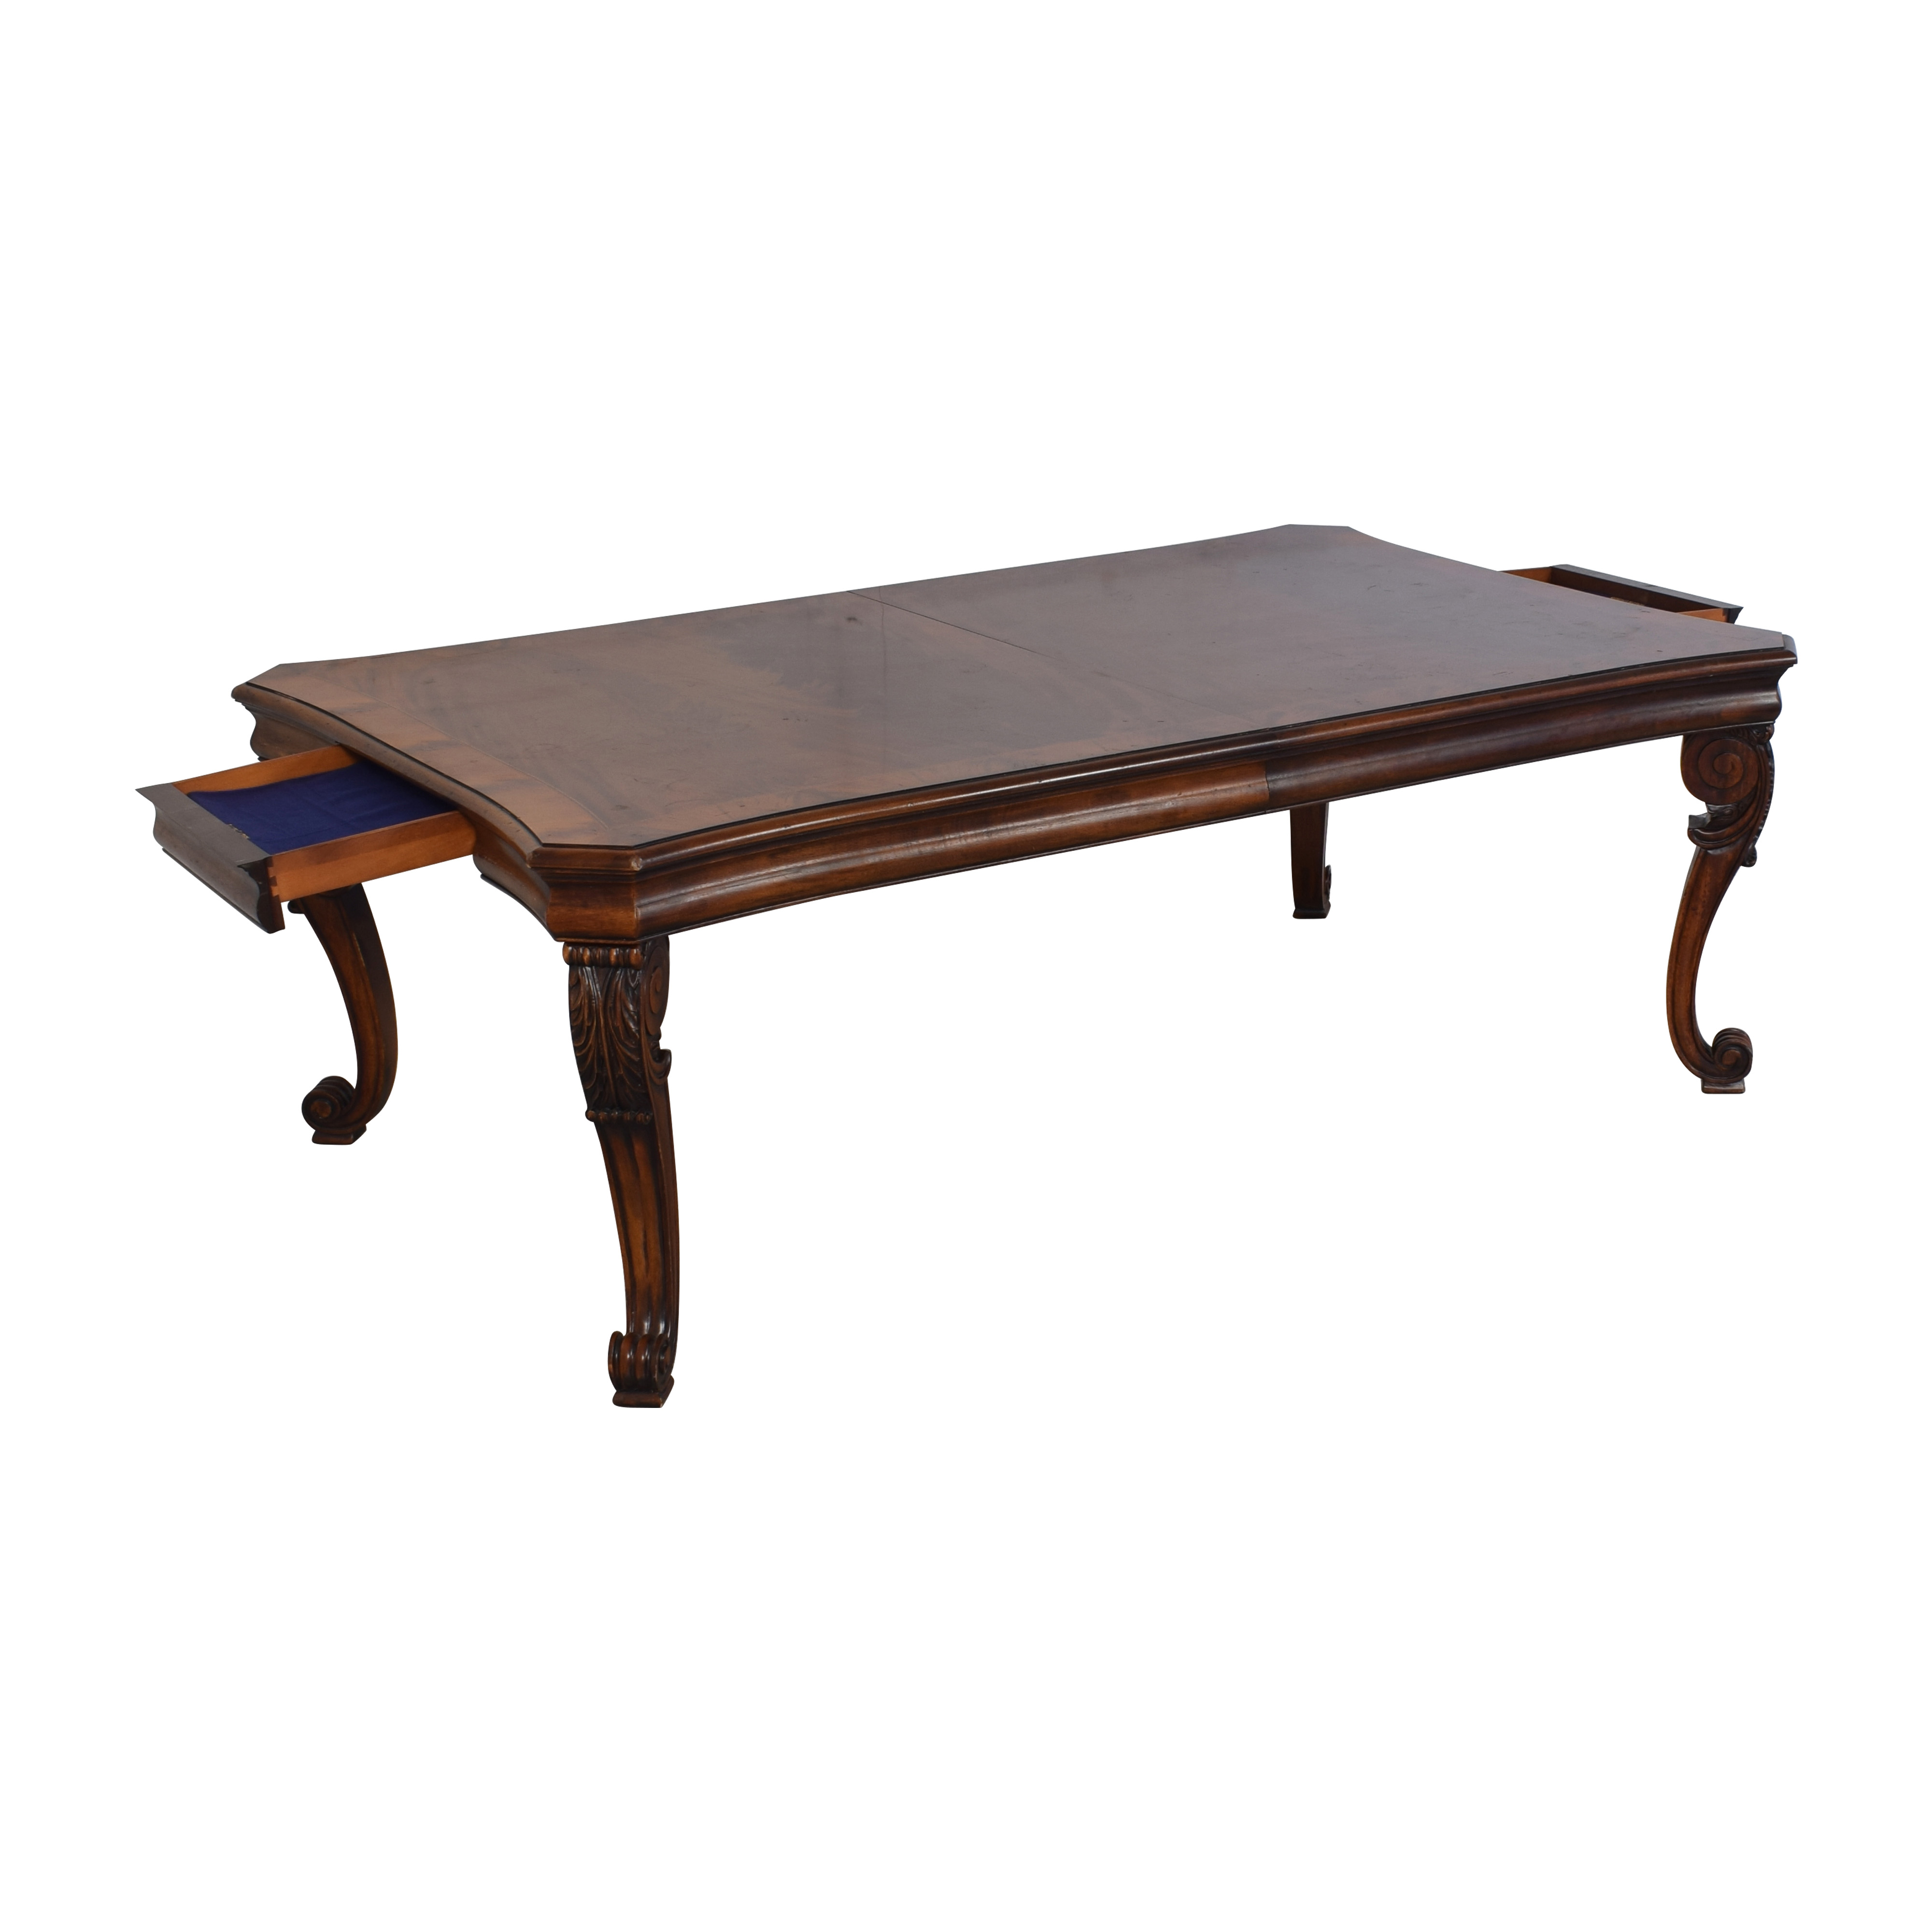 Ralph Lauren Home Beekman Mahogany Dining Table with Two Additional Leaves / Tables